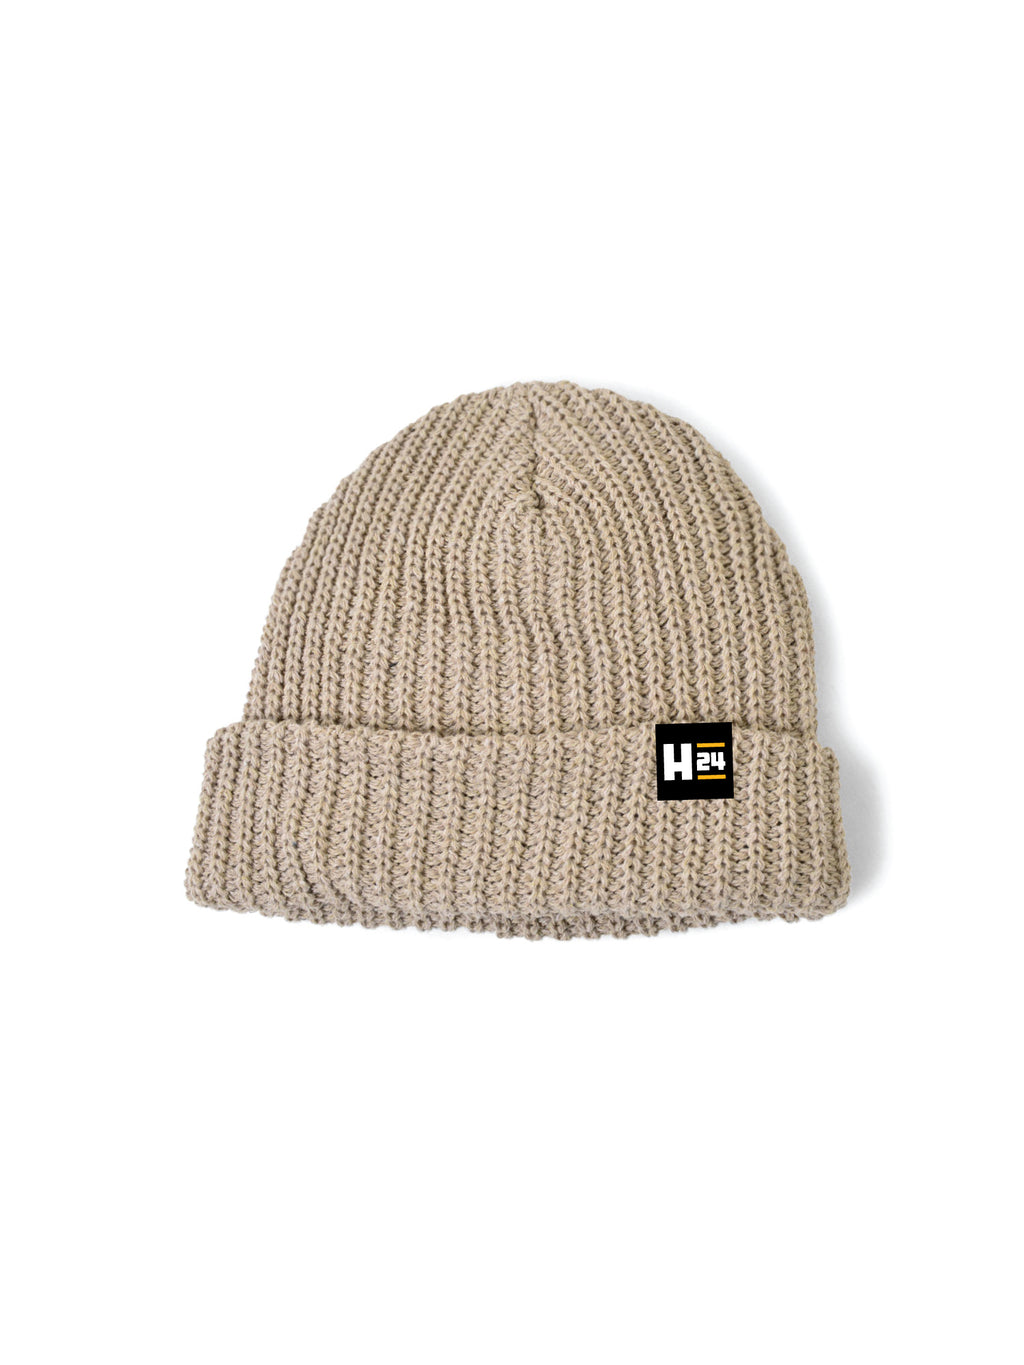 HANGAR 24 STANDARD BEANIE- TAN - Anderson Bros Design and Supply